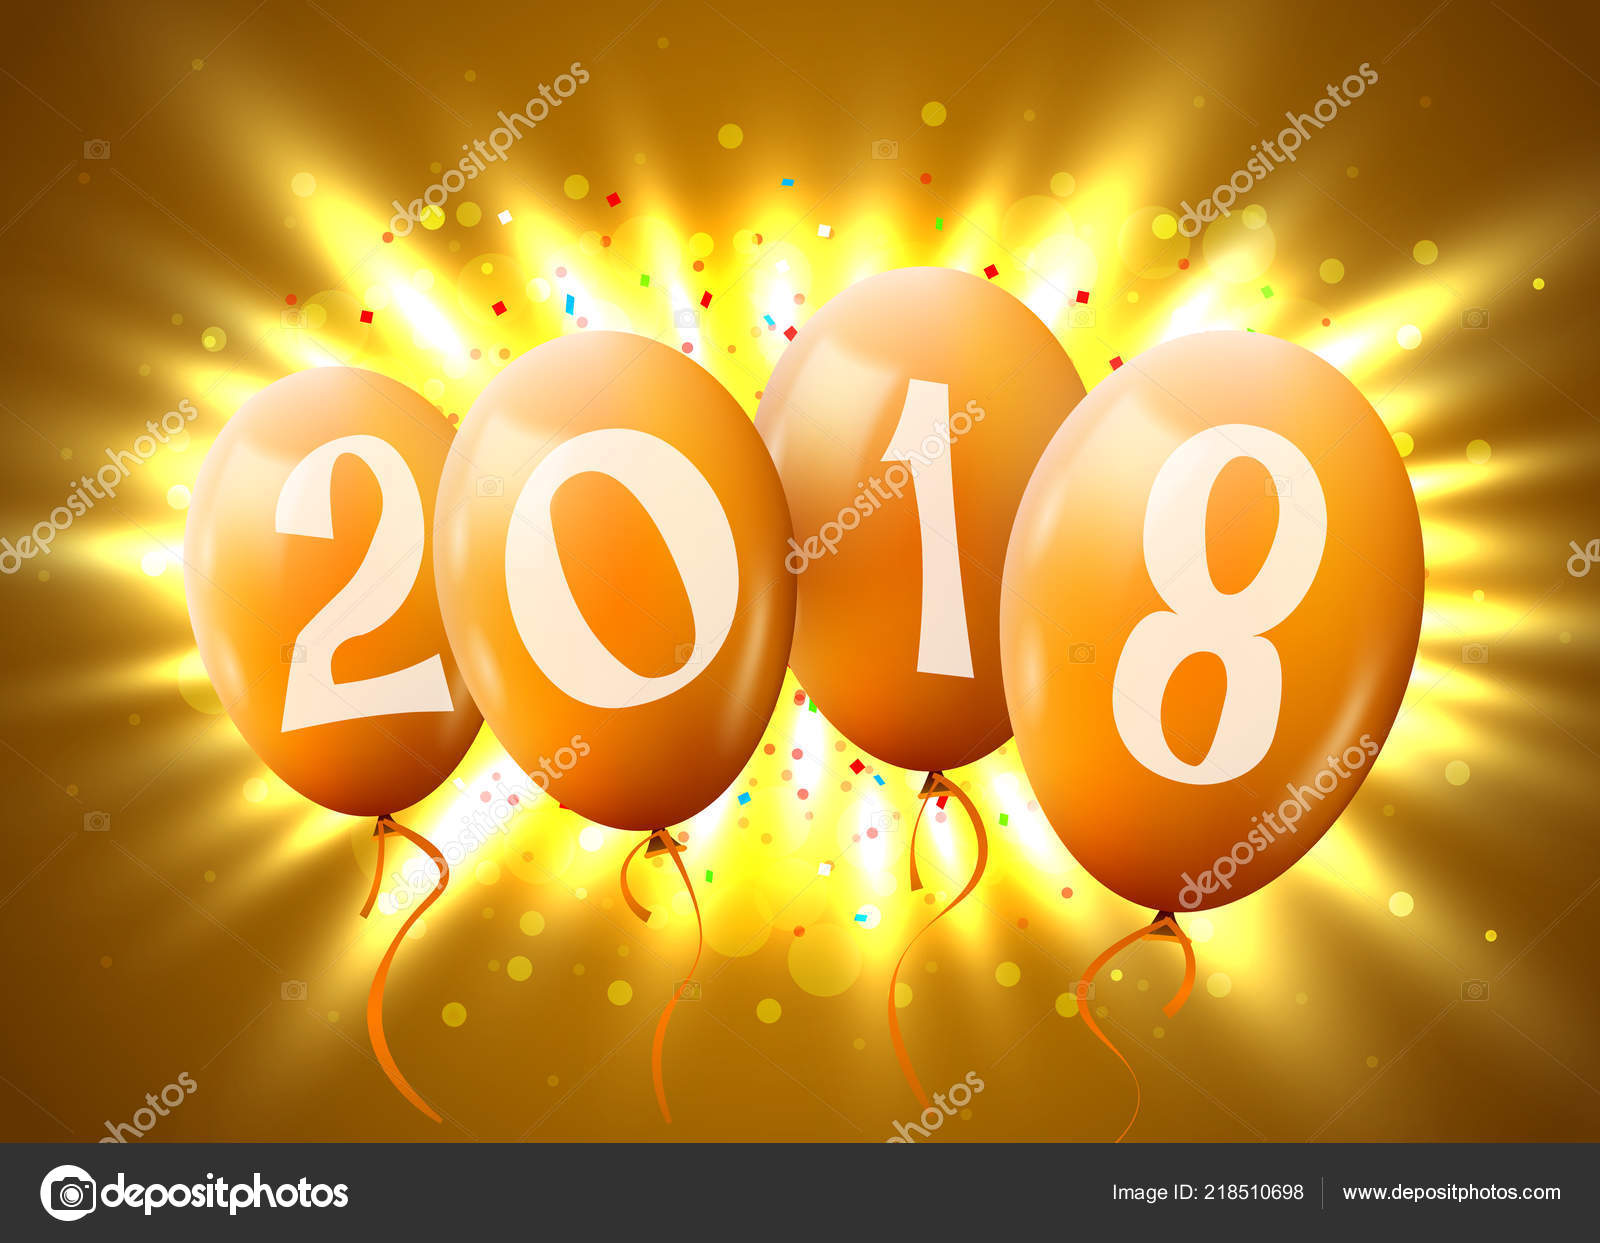 greeting card 2018 christmas or new year card with realistic golden balloons and numbers on yellow